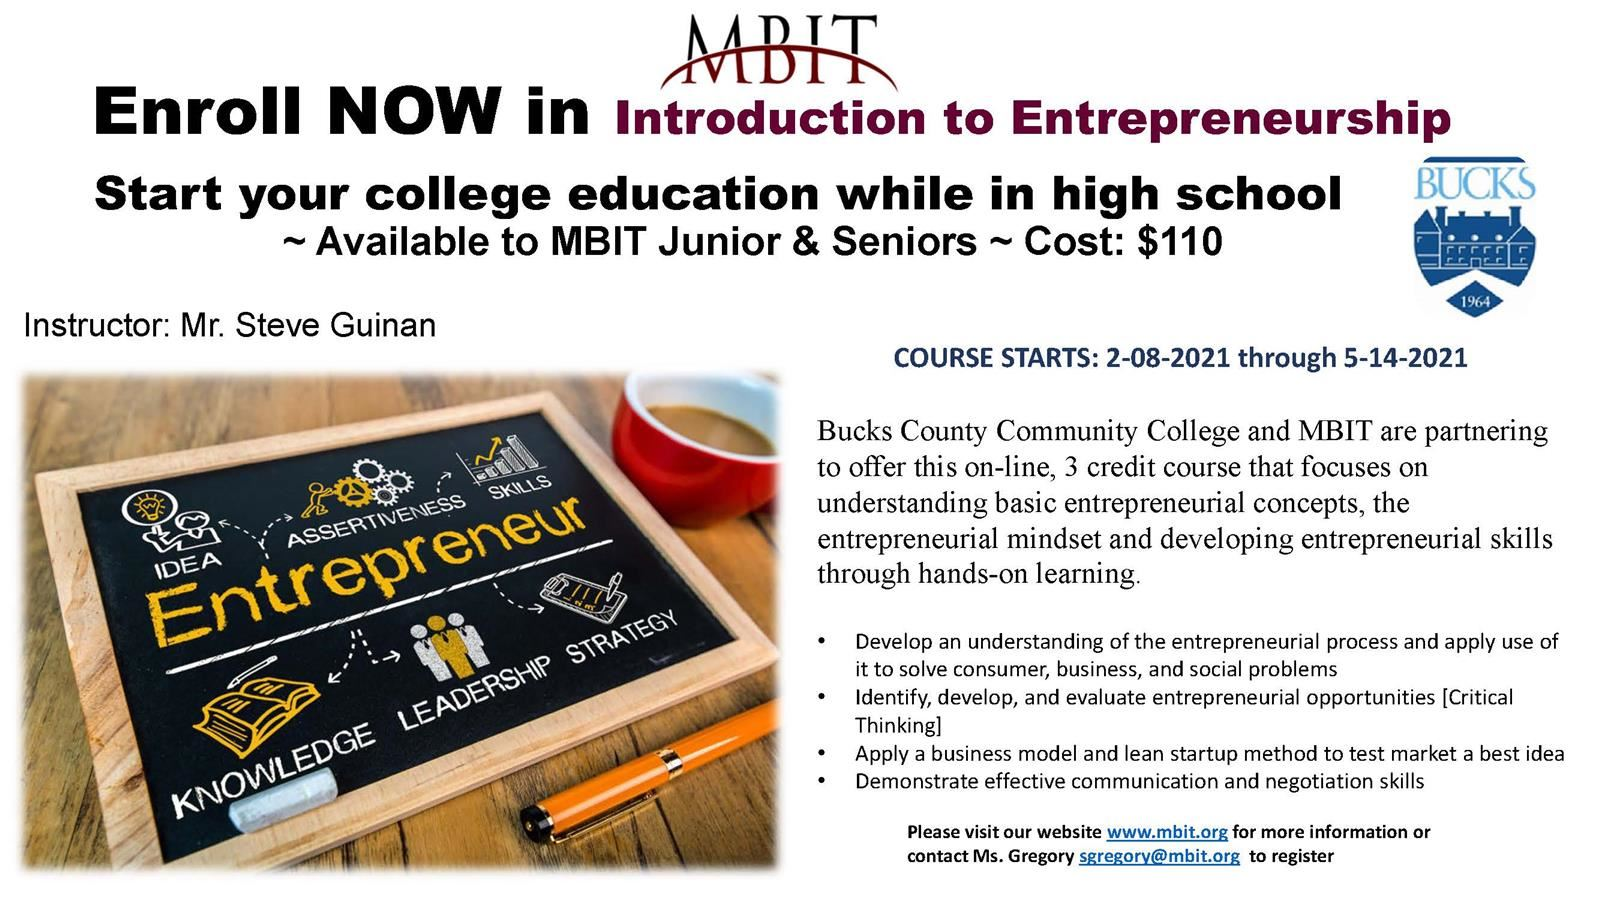 3 Credit Course!  Bucks County Community College & MBIT Introduction to Entrepreneurship course is available for juniors and seniors!